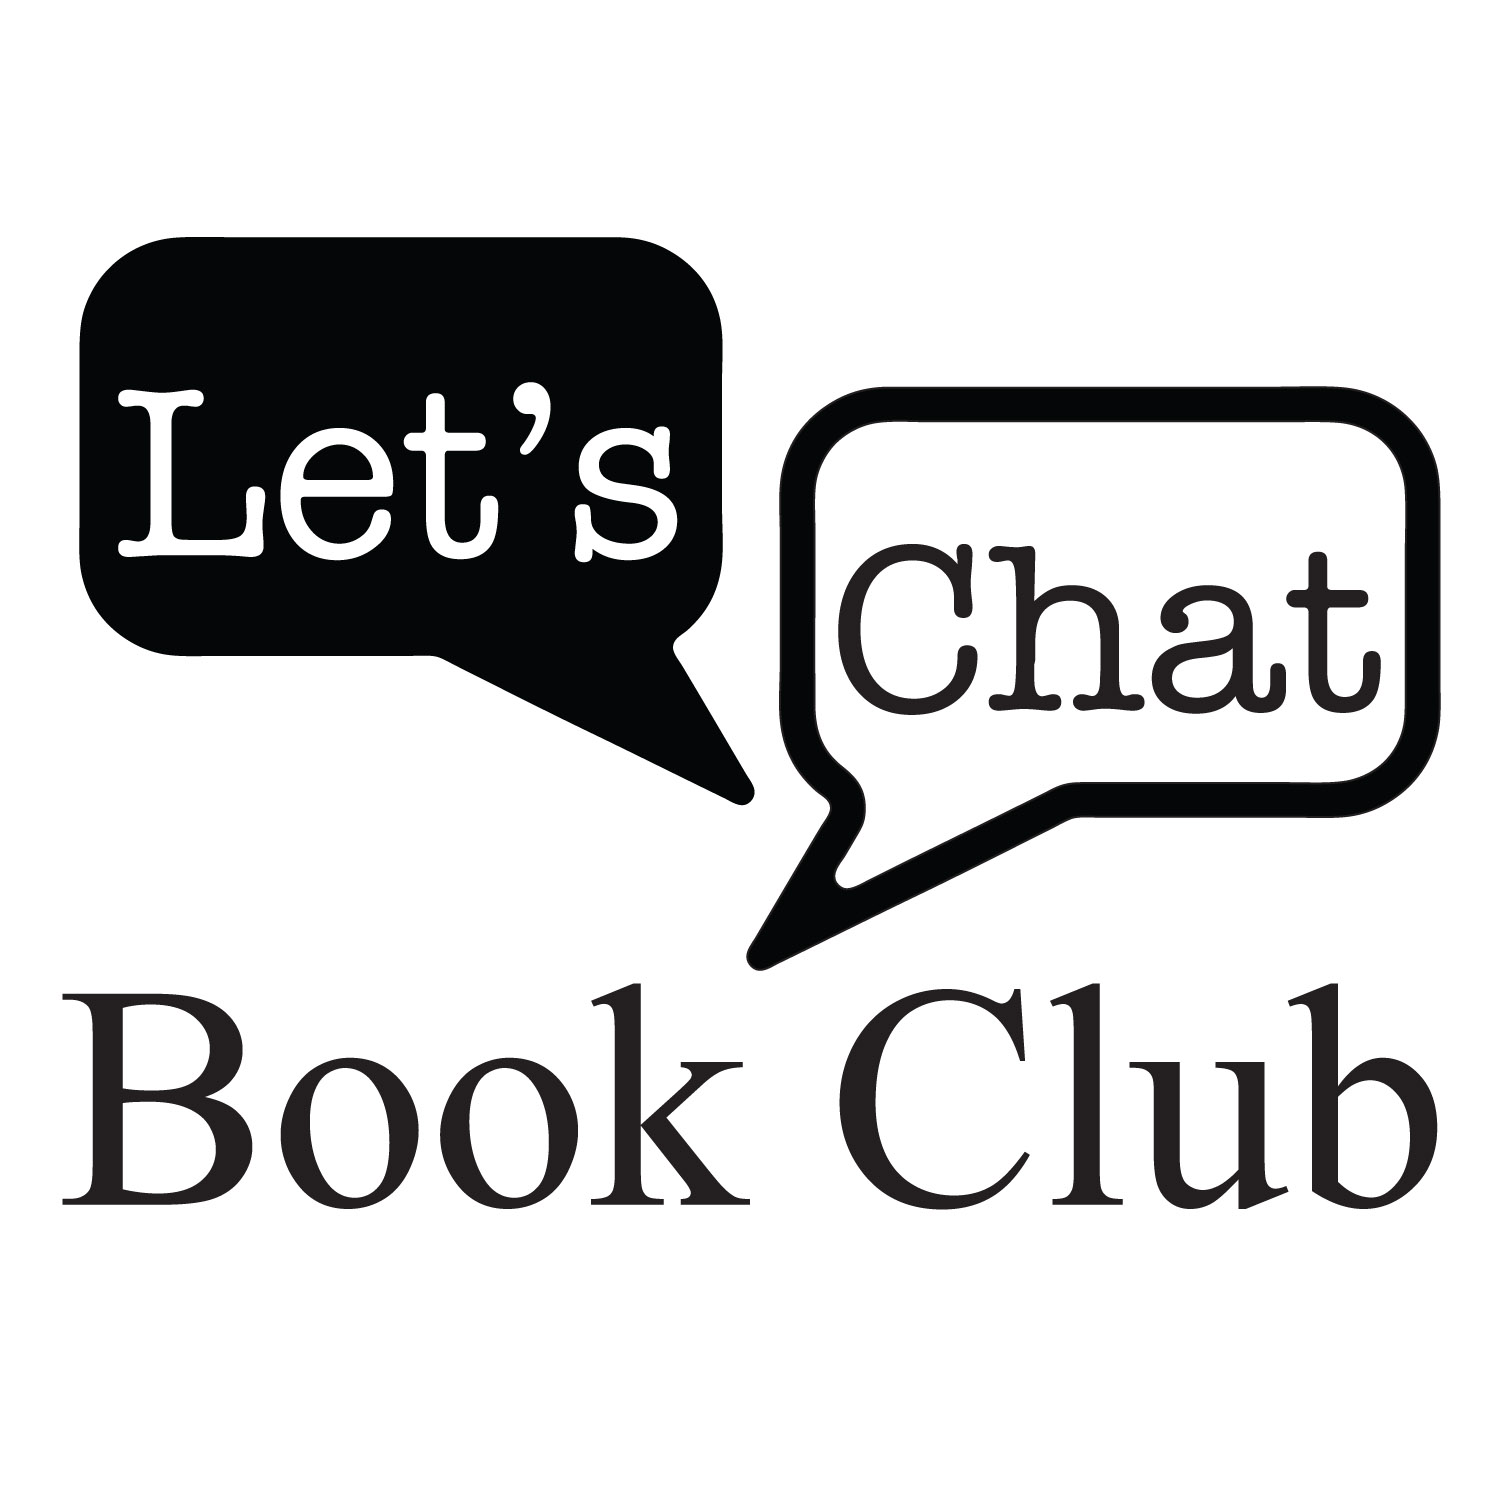 Let's Chat book club